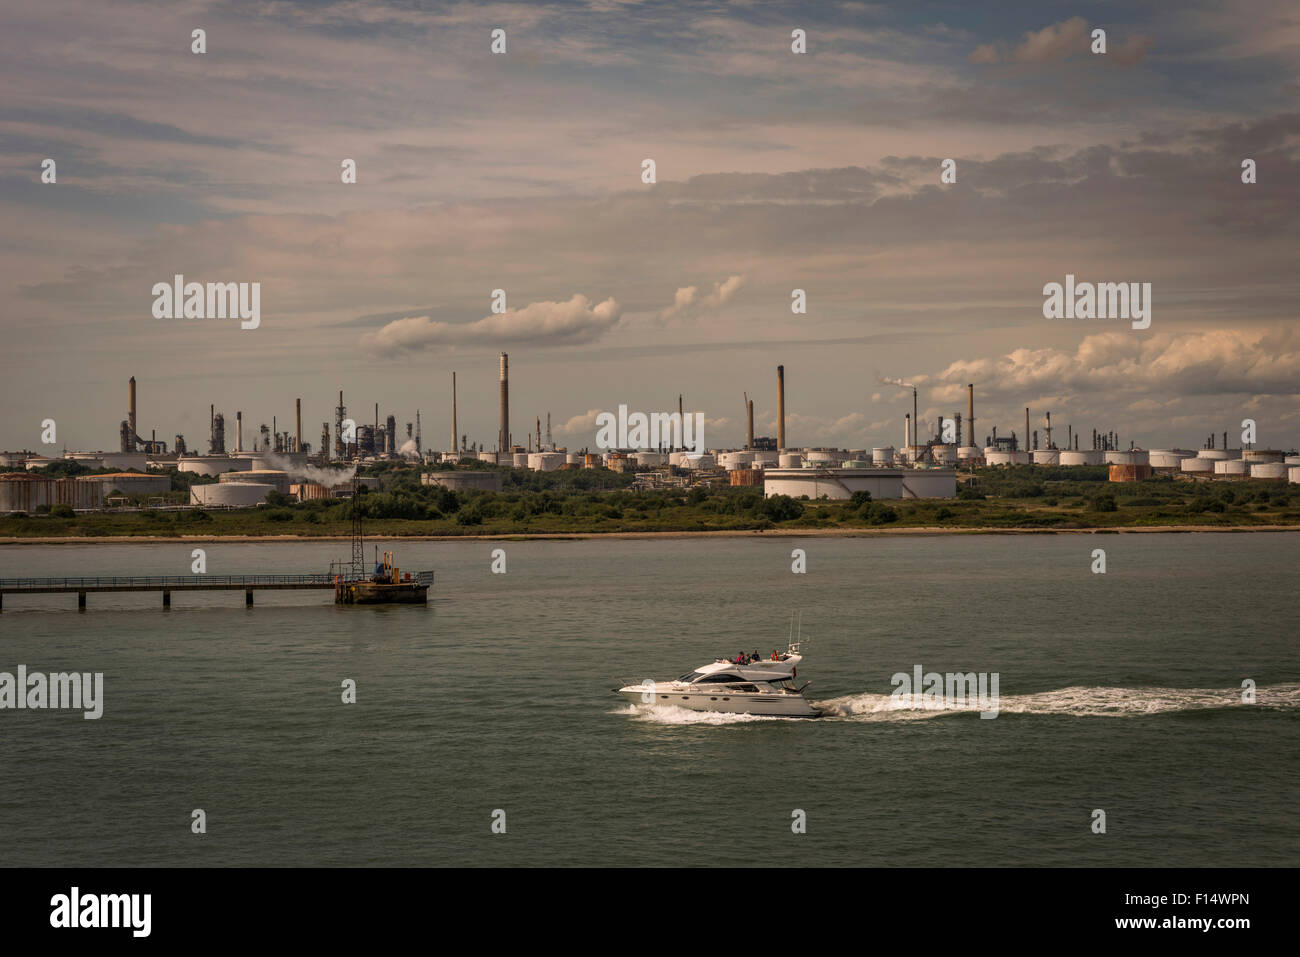 A motor launch passing Fawley Oil Refinery near Southampton, Hampshire, UK Stock Photo